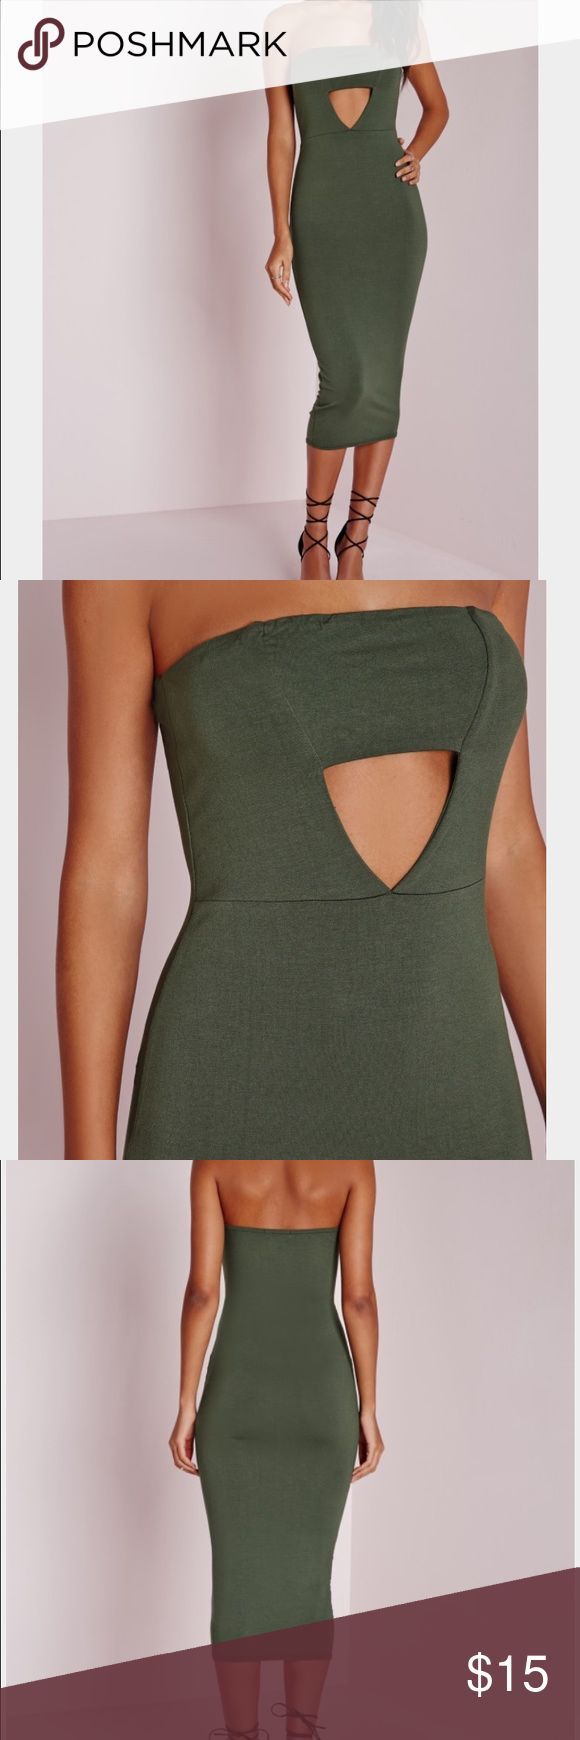 1000+ ideas about Olive Green Dresses on Pinterest | Green ...